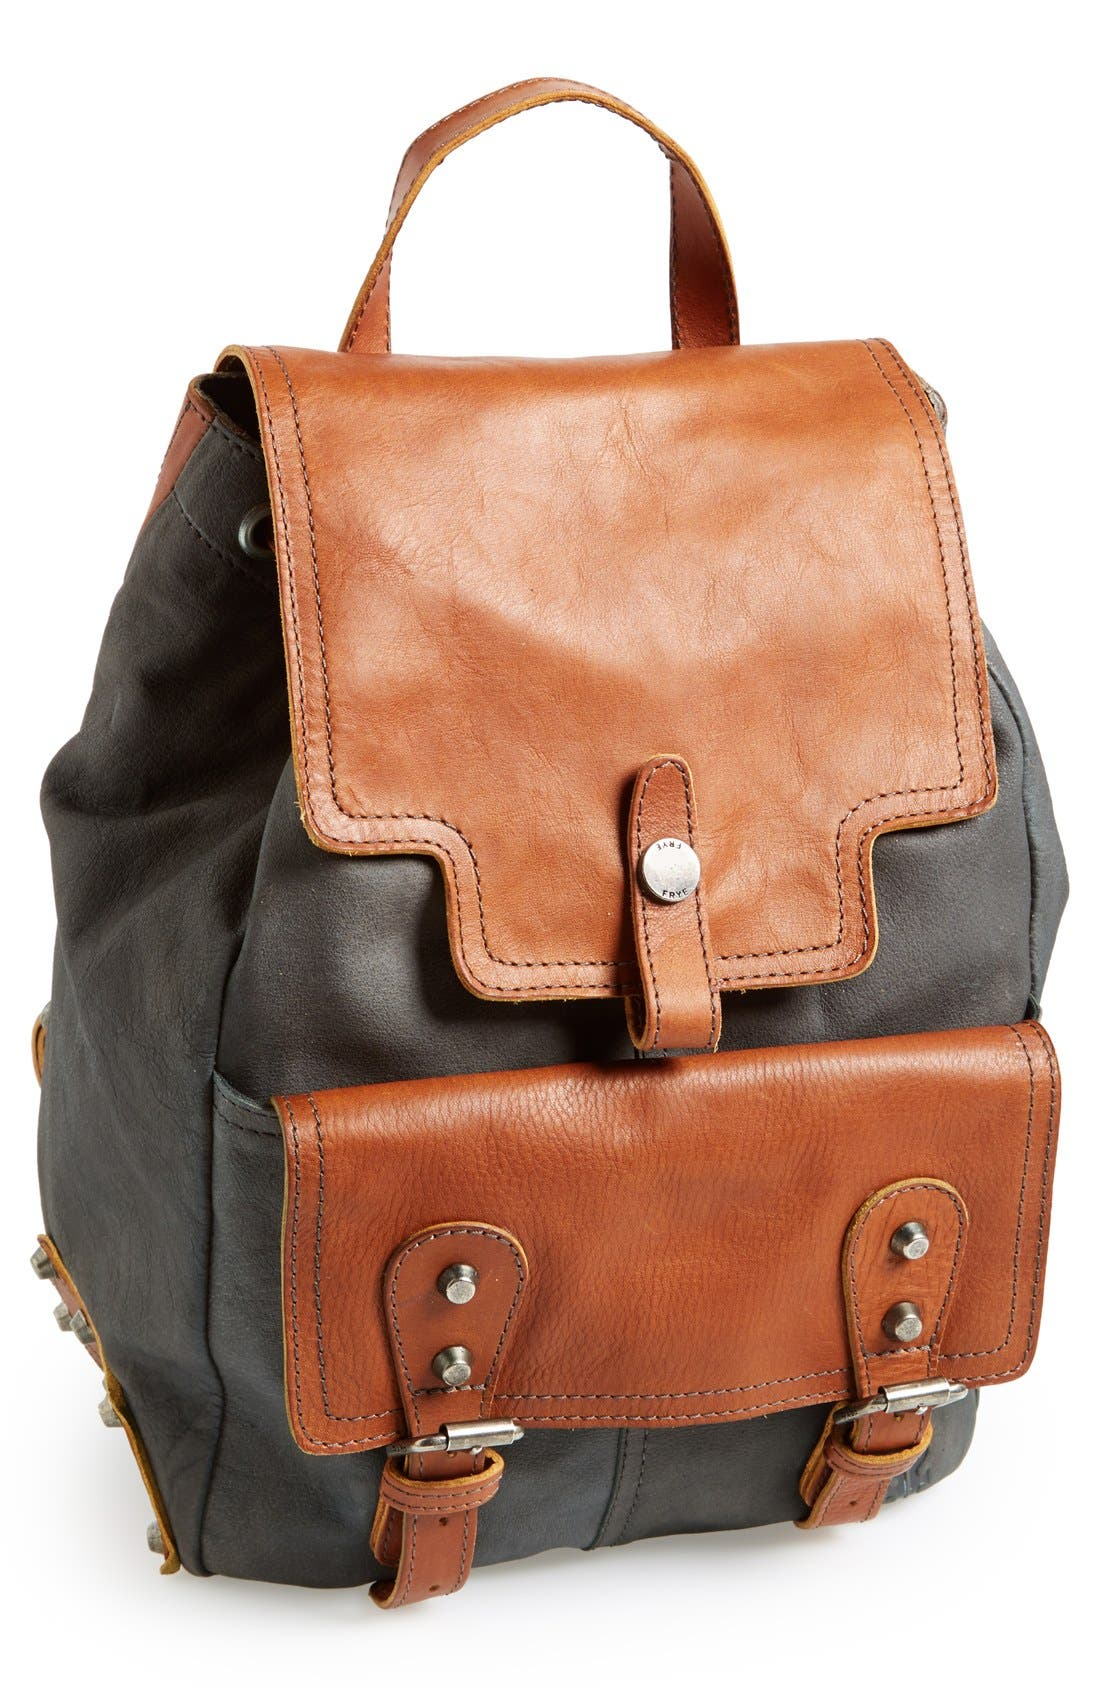 Alternate Image 1 Selected - Frye 'Tracy' Leather Backpack